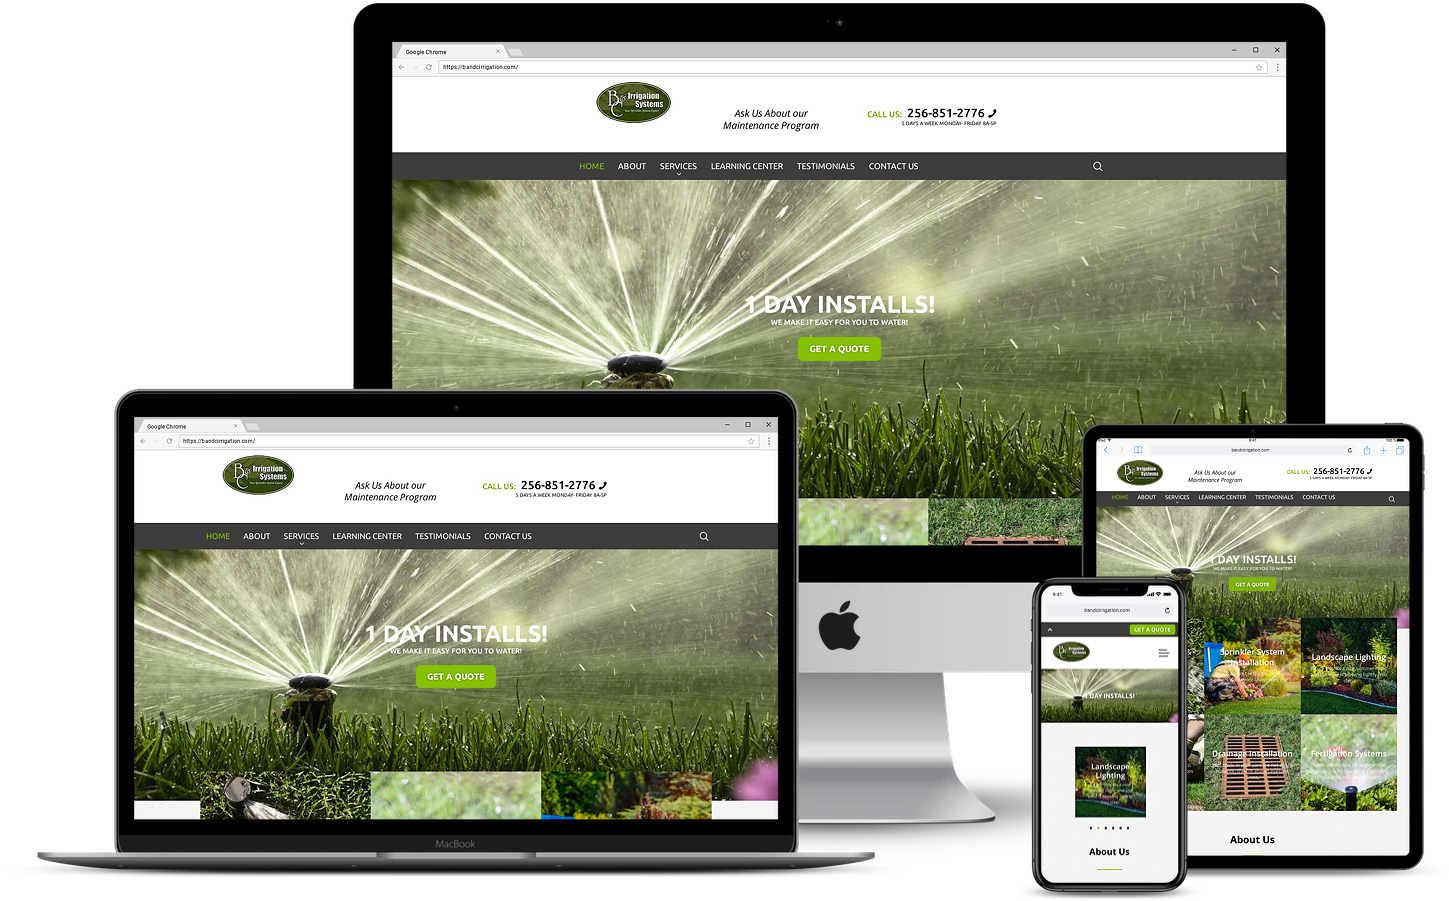 B&C Irrigation Website